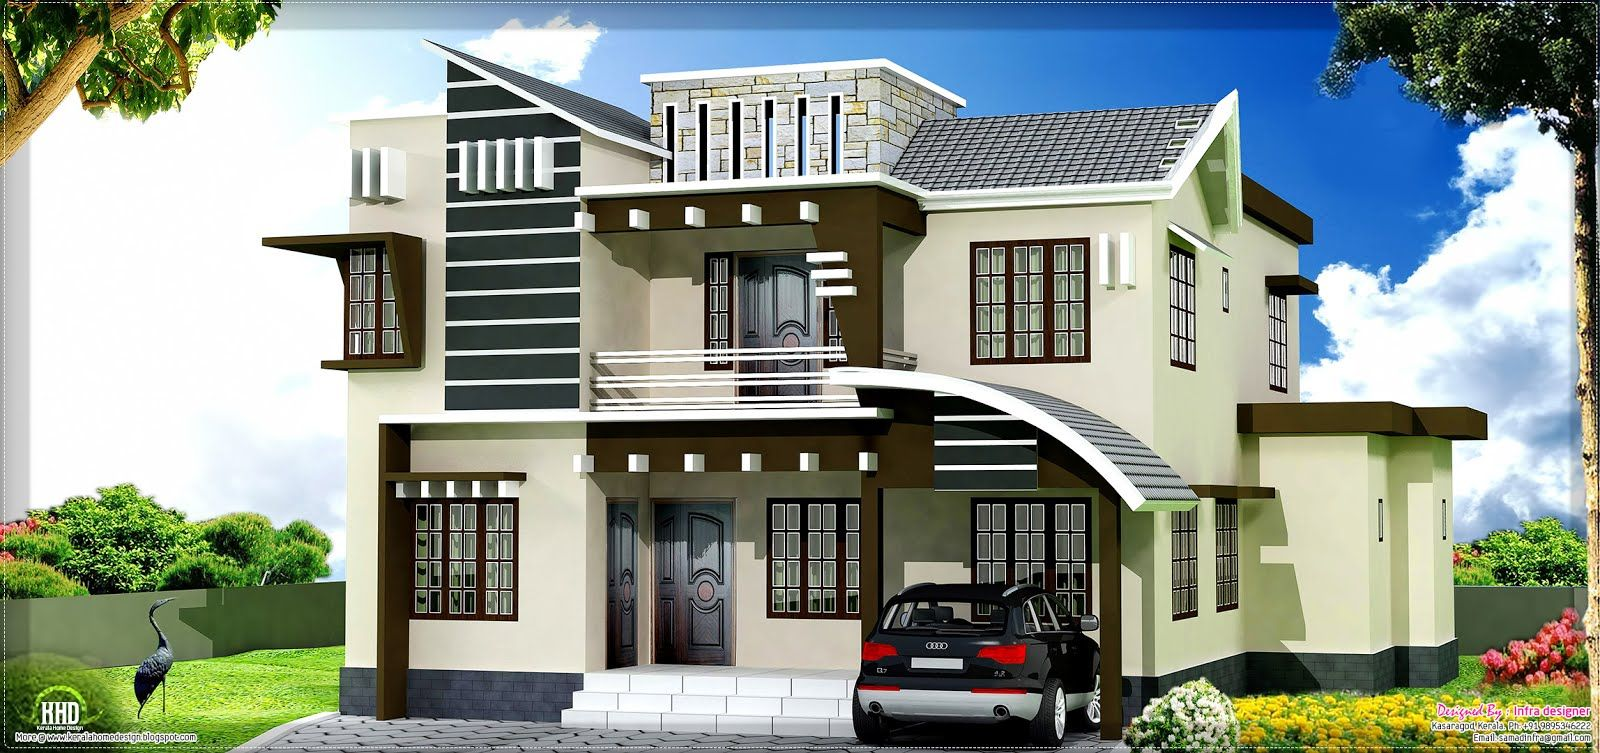 2450 Sq Feet Home Design From Kasaragod Kerala Kerala Home Design